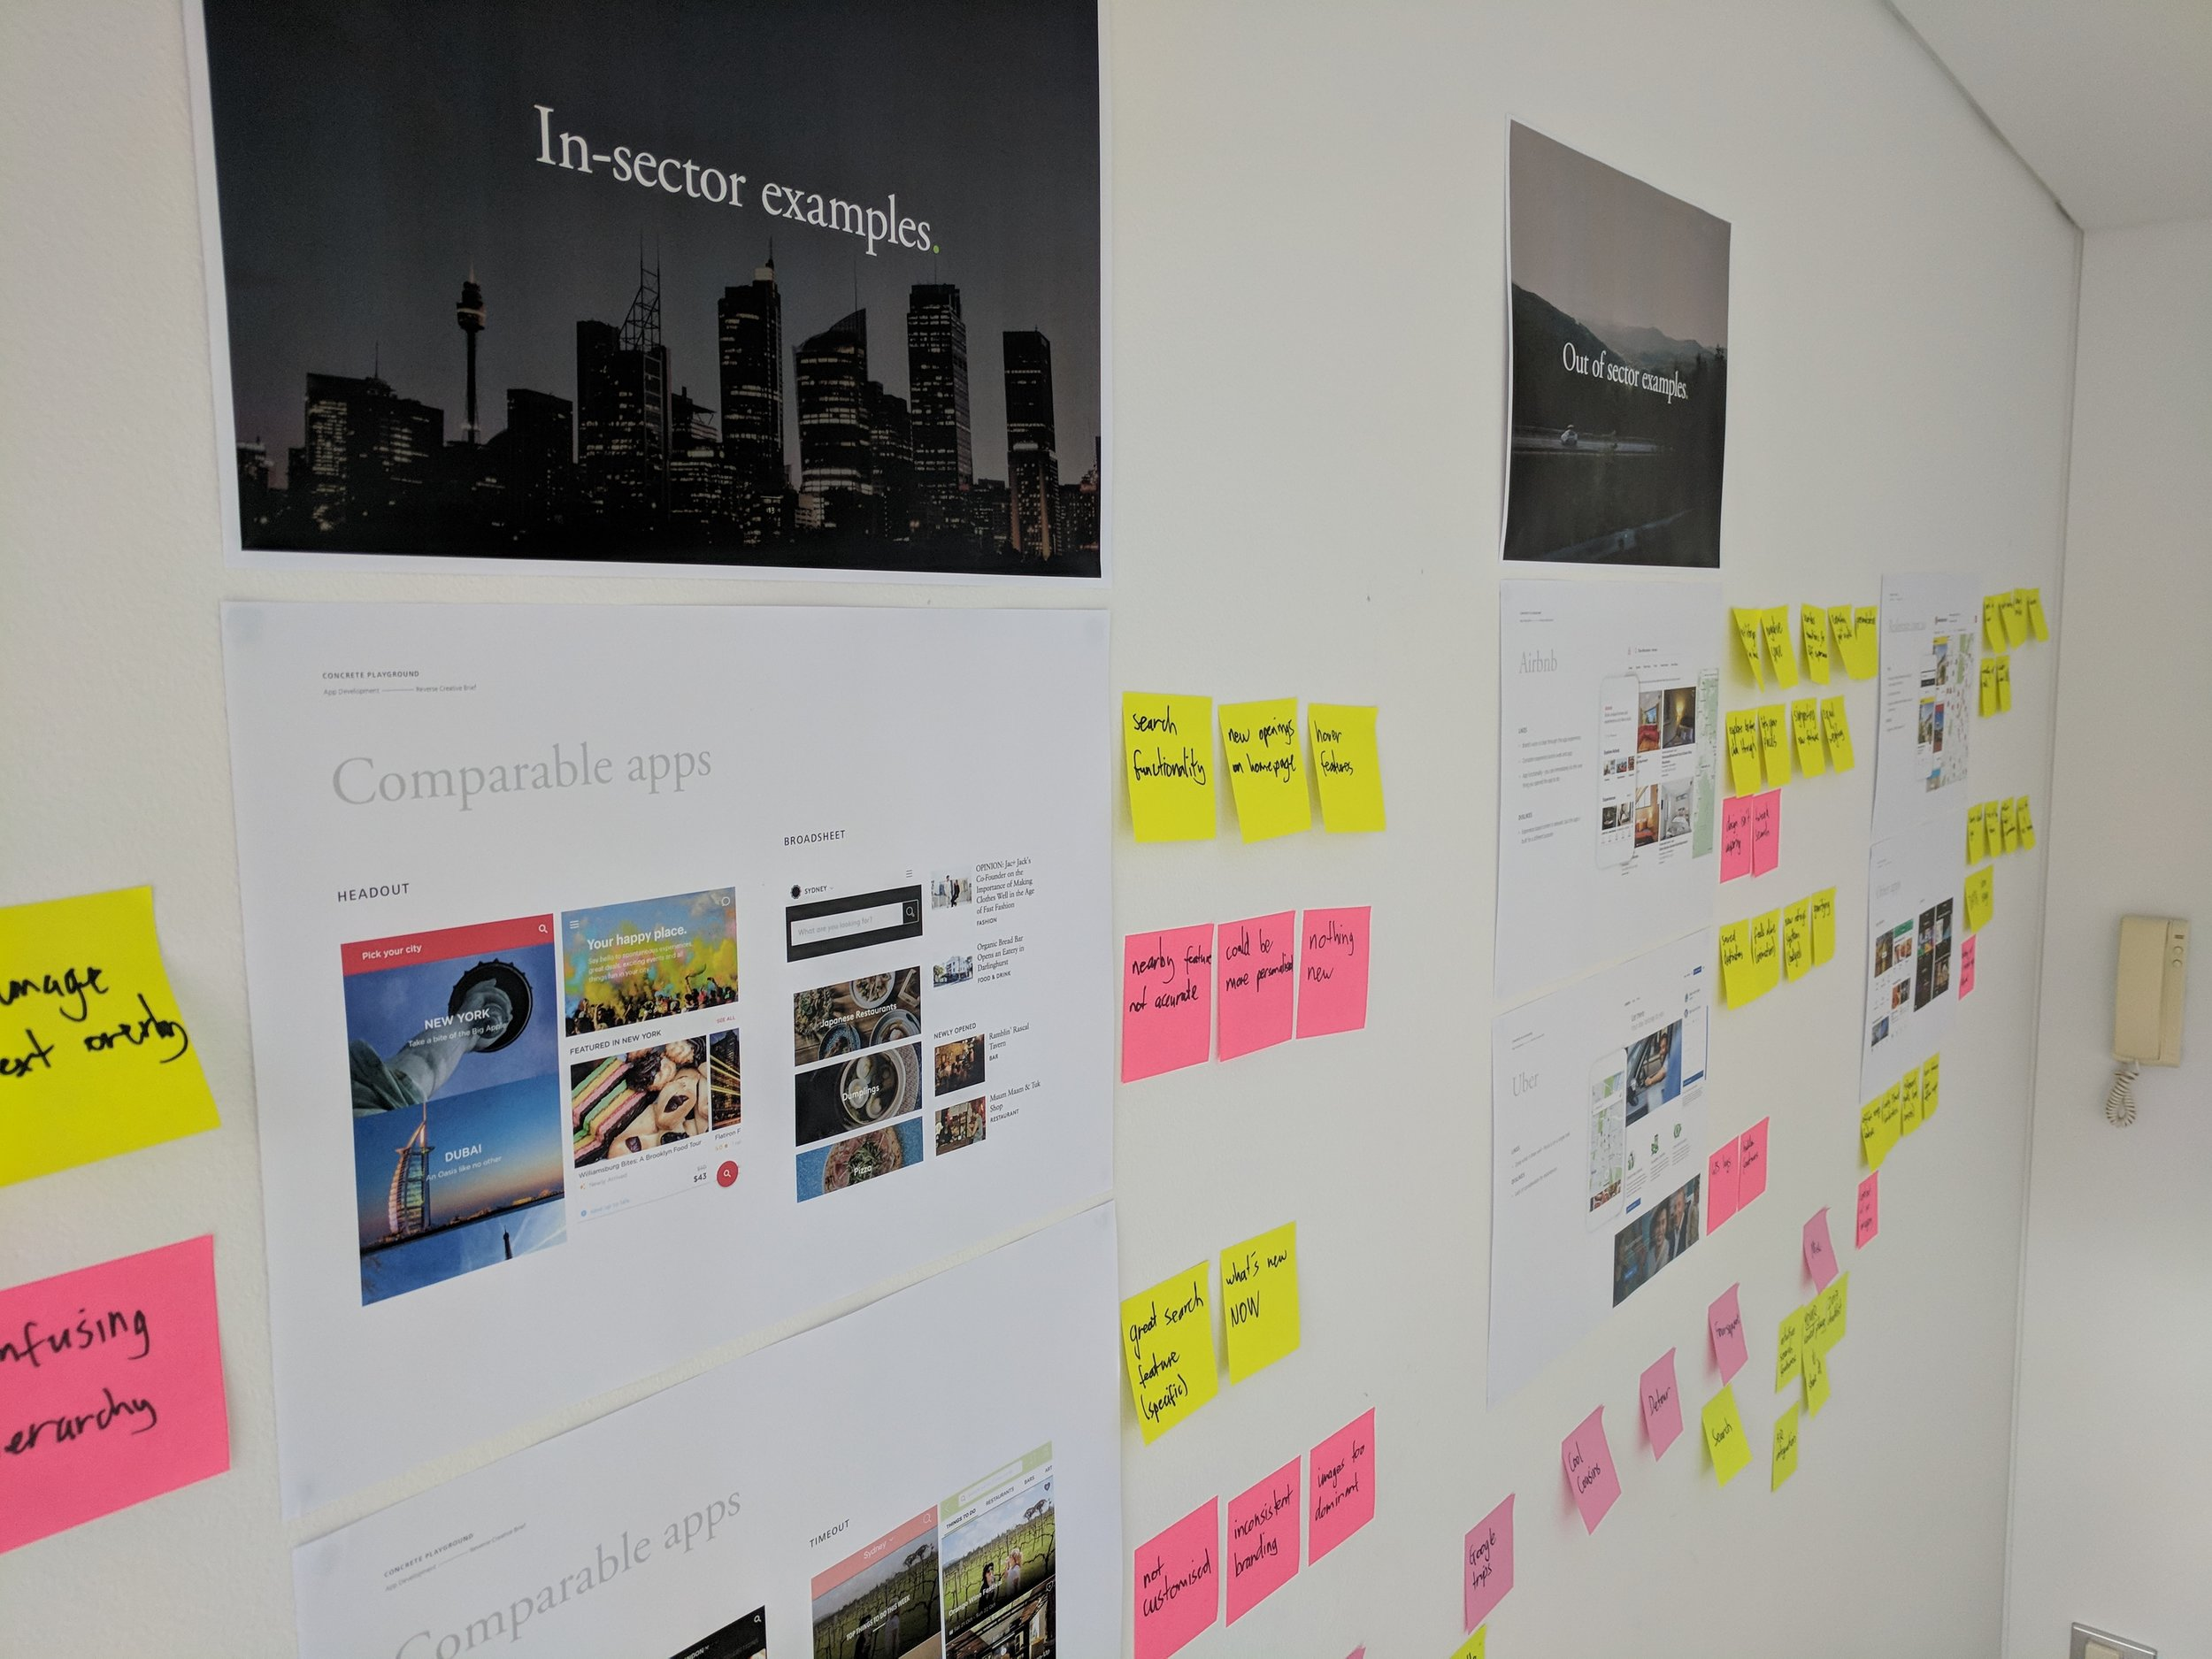 Client workshop to ideate and co-design for their new application.